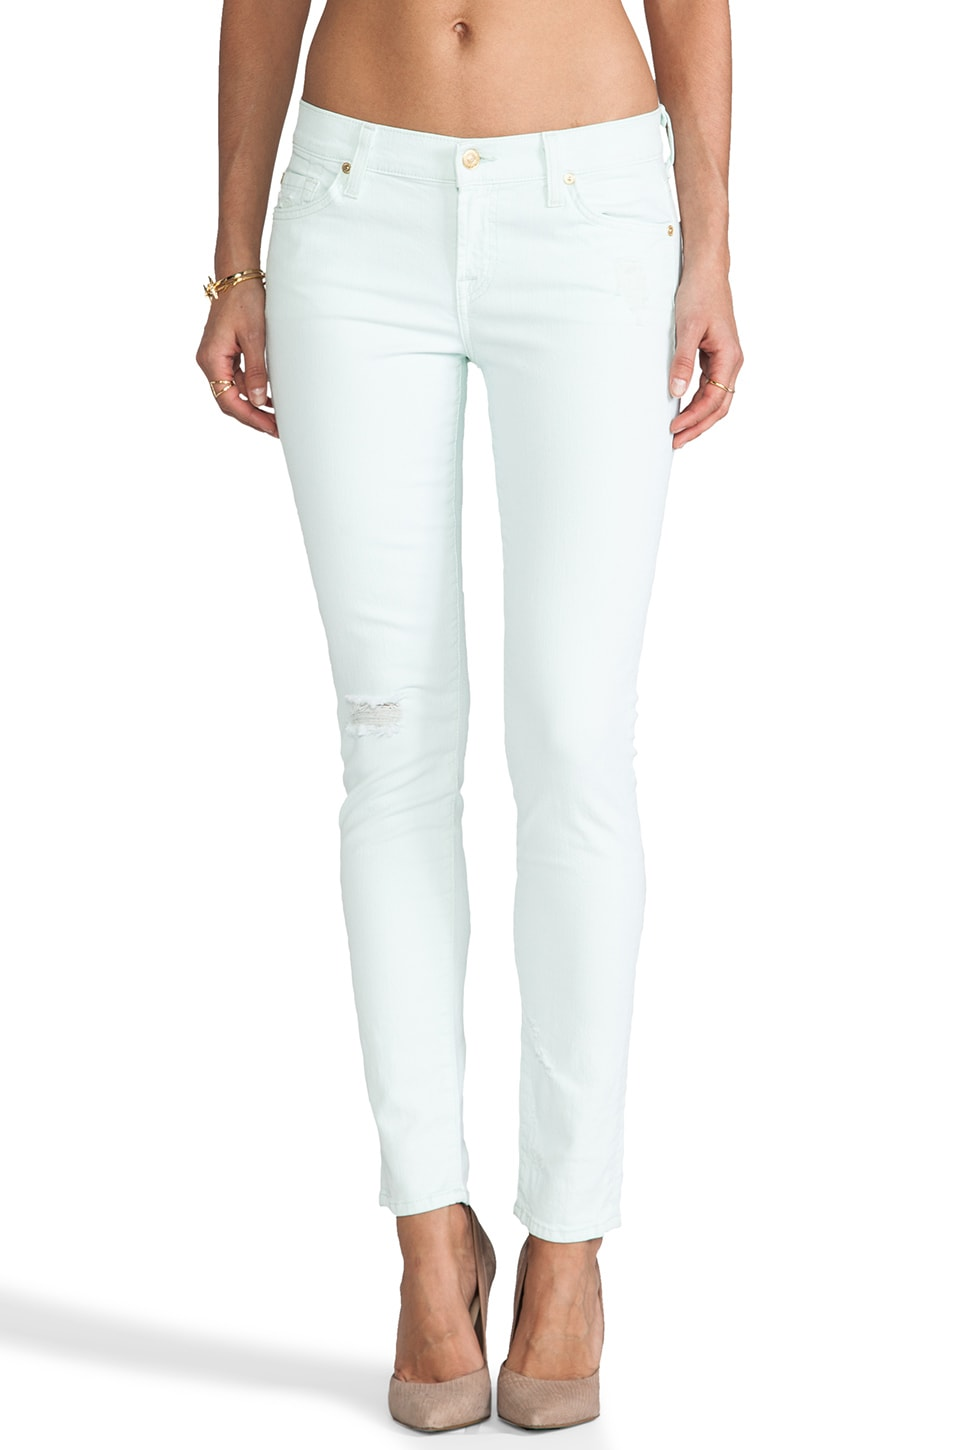 7 For All Mankind The Slim Cigarette in Aqua Destroy